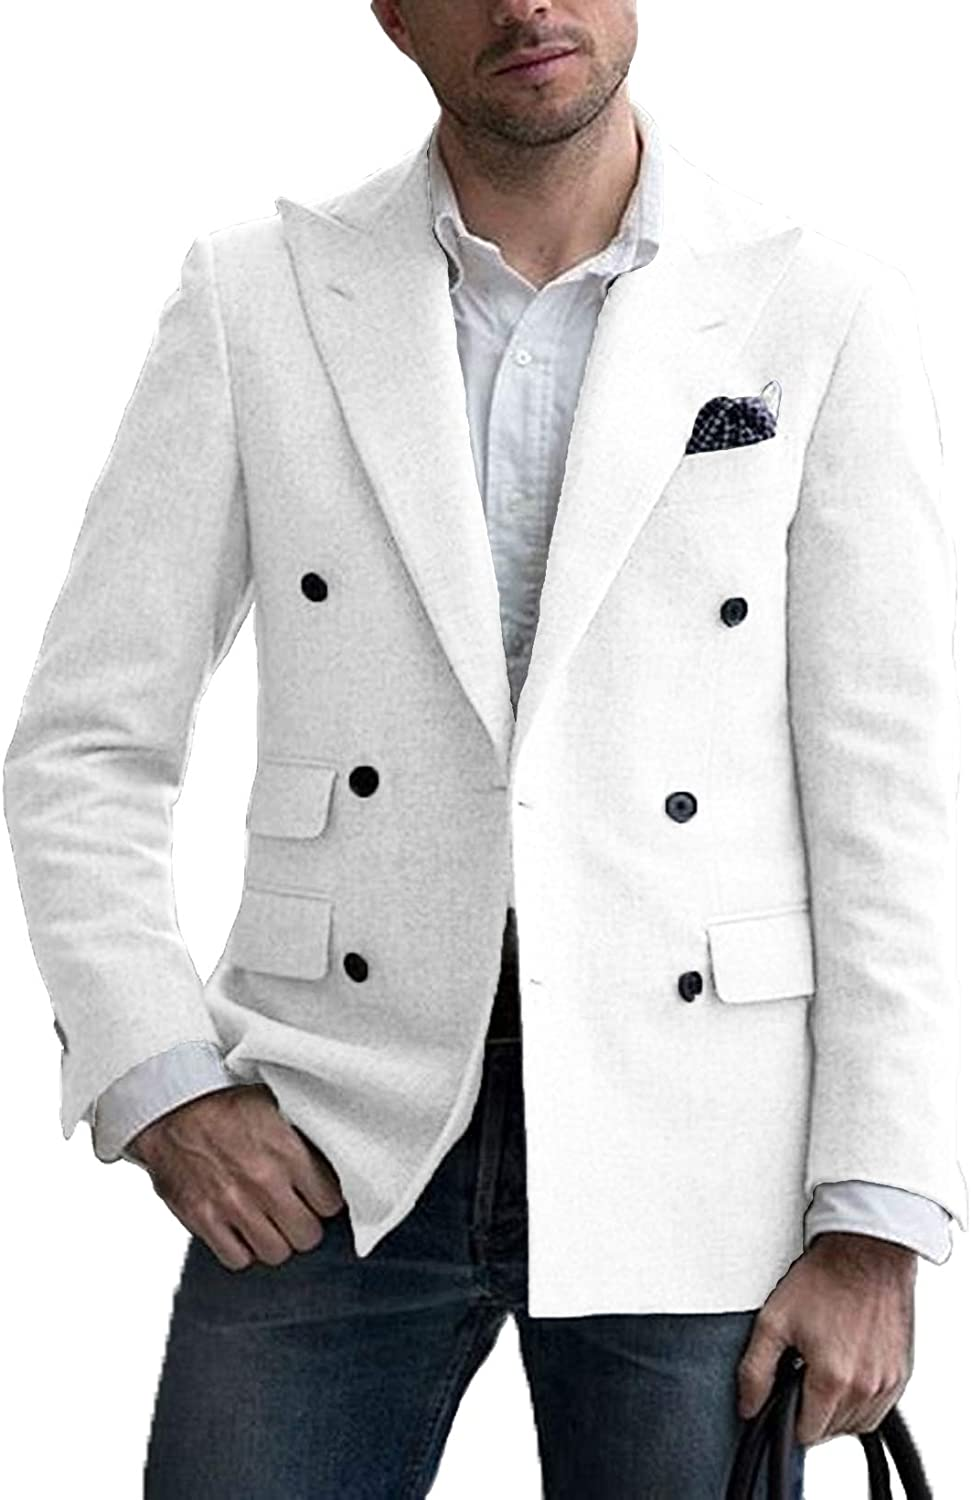 Men Double Breasted Blazer Slim Fit Sport Casual Tuxedo C Max 85% Over item handling ☆ OFF Jacket